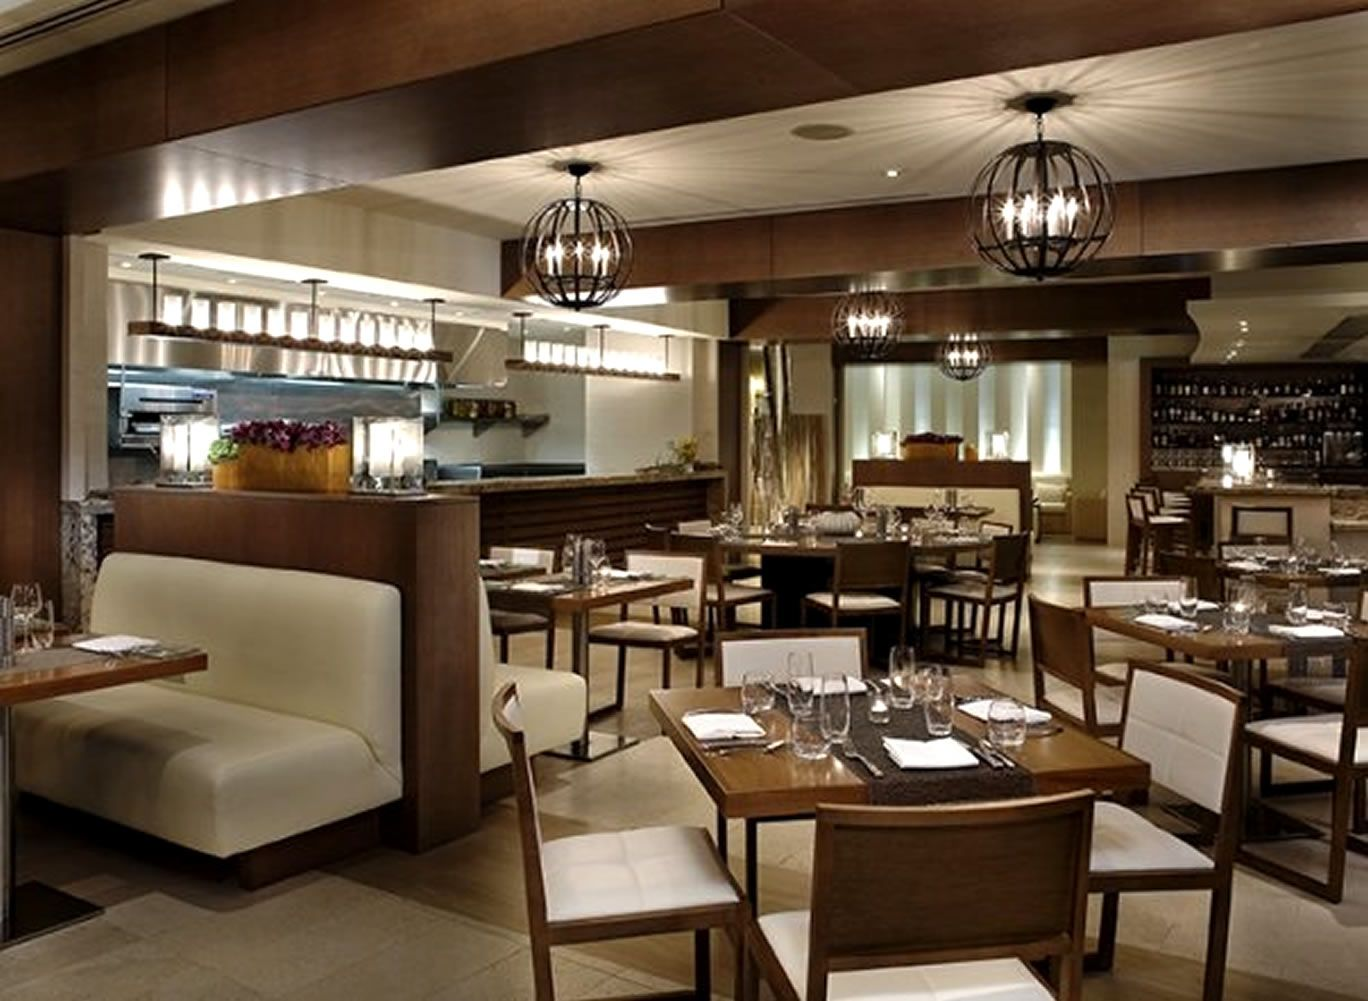 Interior Luxury Restaurant Design Mixed With Wooden Dining Table. Restaurant dining room design